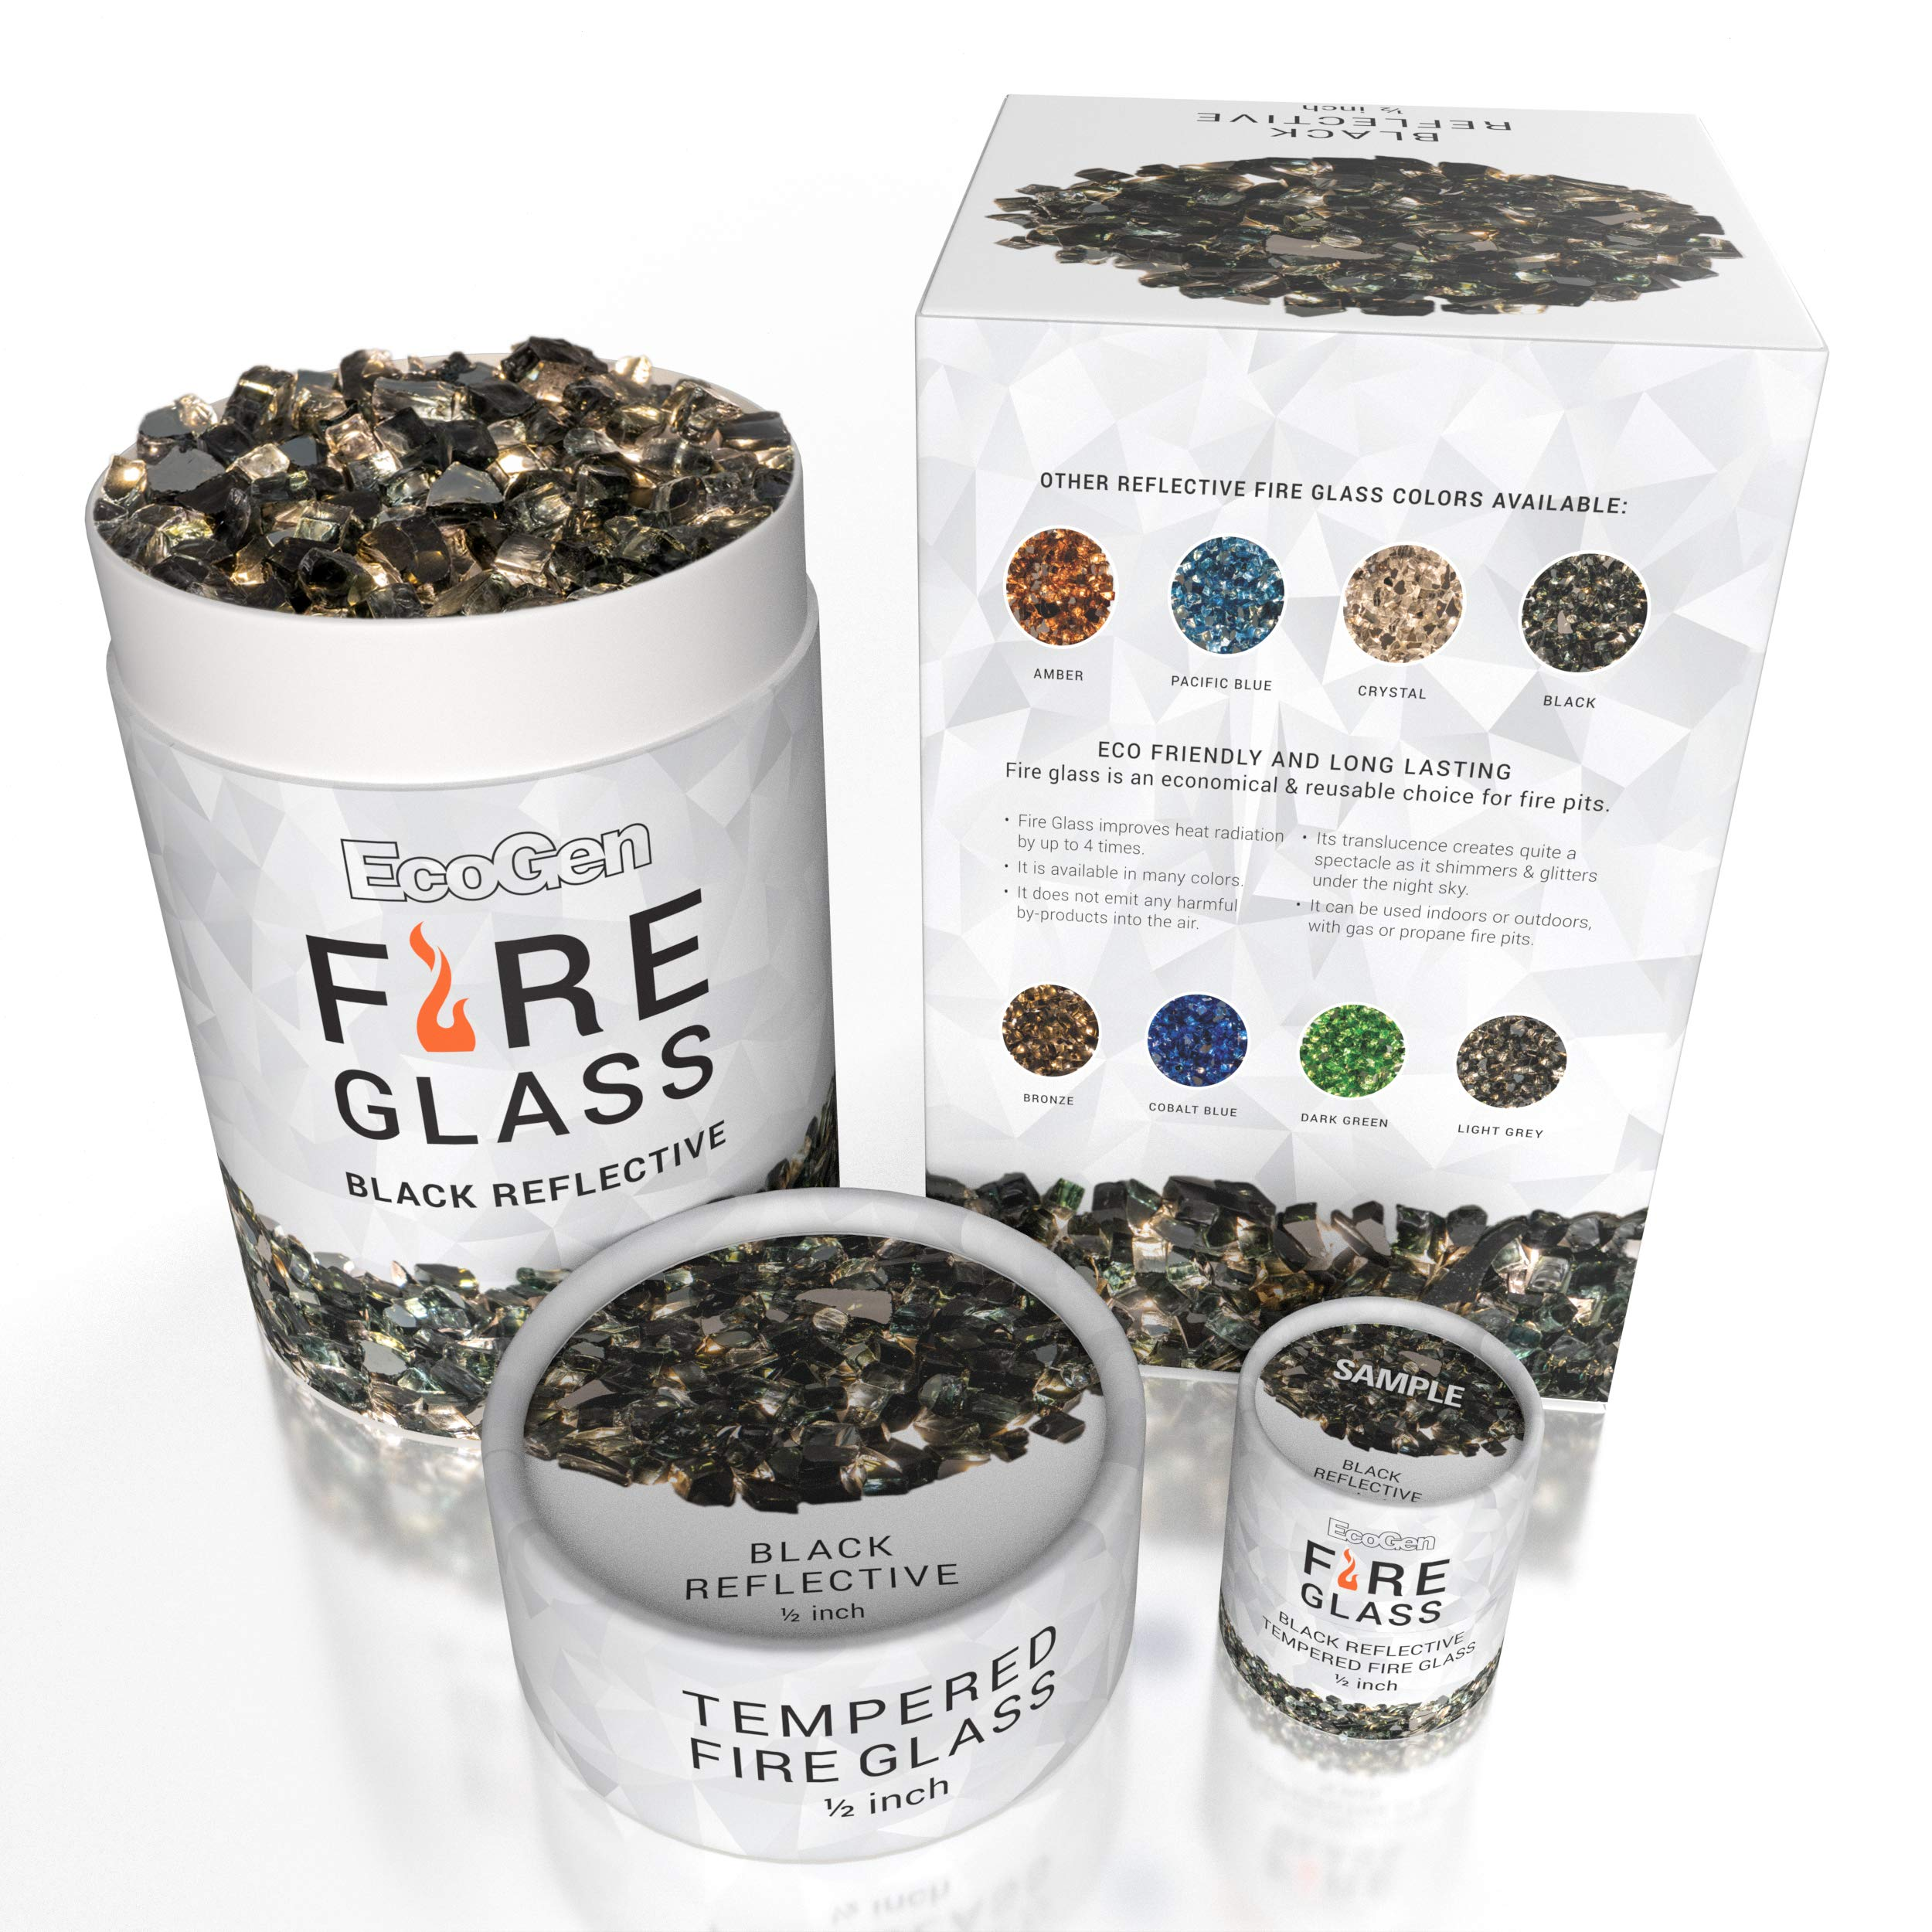 EcoGen Fire Glass Rocks for Outdoor Fire Pits and Indoor Fireplace, Color, Optimal Heat for Propane or Gas, Tempered and Reflective, Eco-Friendly Packaging, Black 1/2 inch Reflective 3oz Sample.